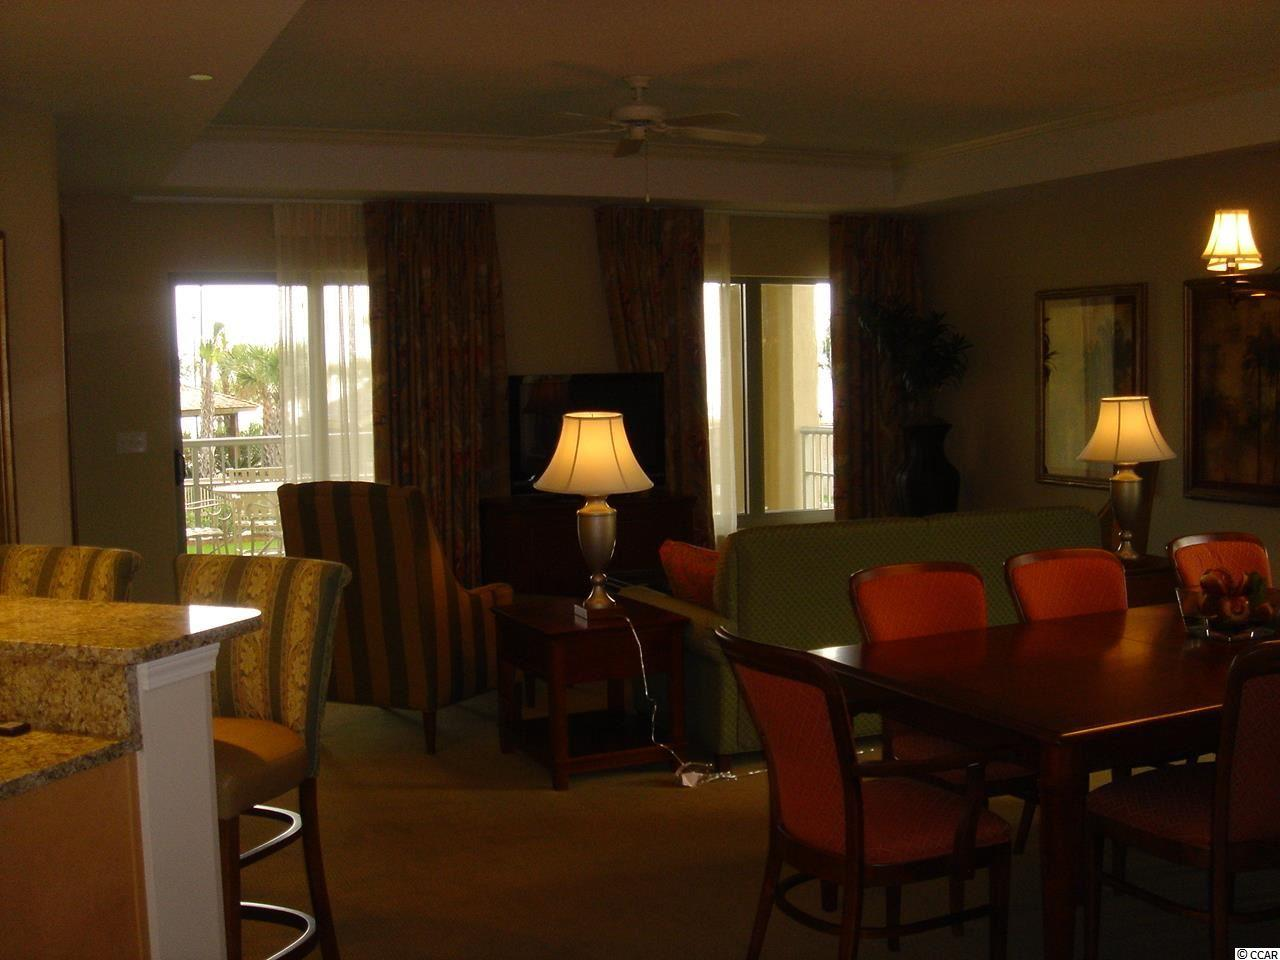 Contact your Realtor for this 3 bedroom condo for sale at  Royale Palms